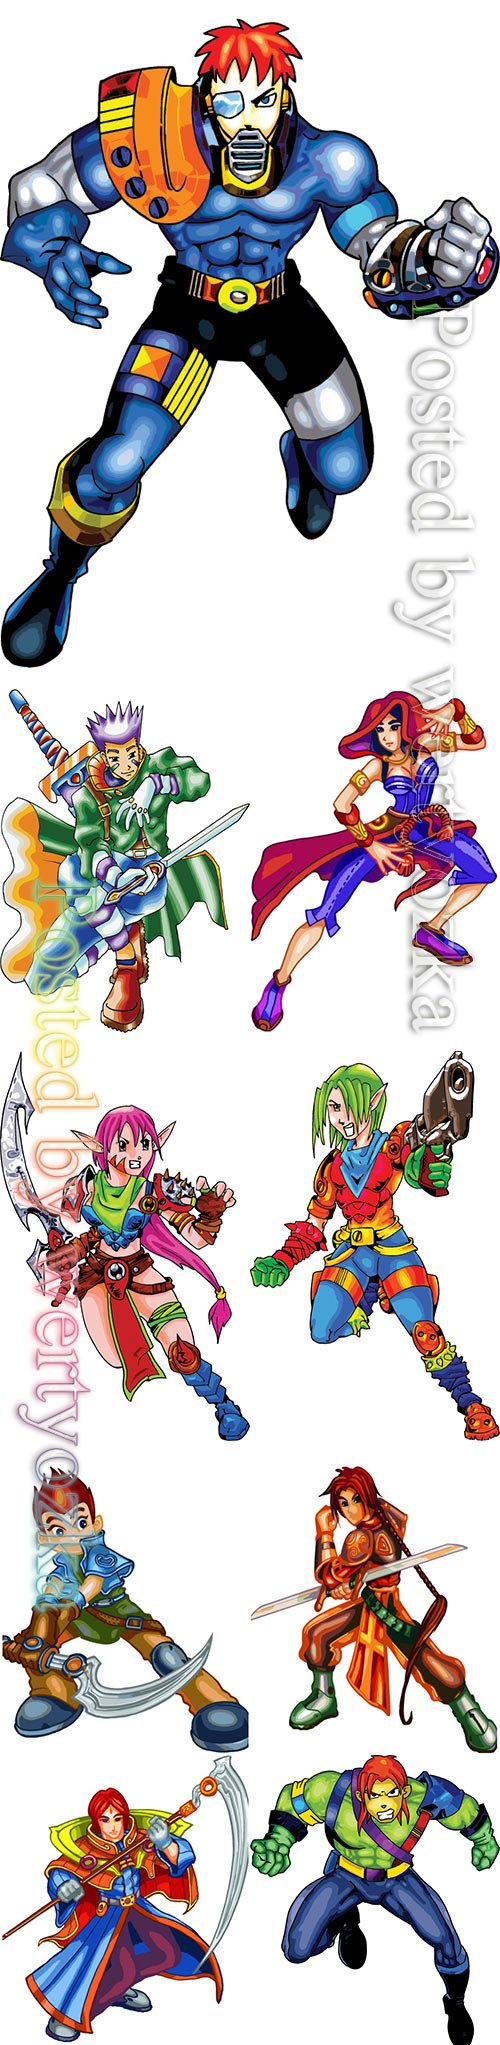 Set of warrior tale character